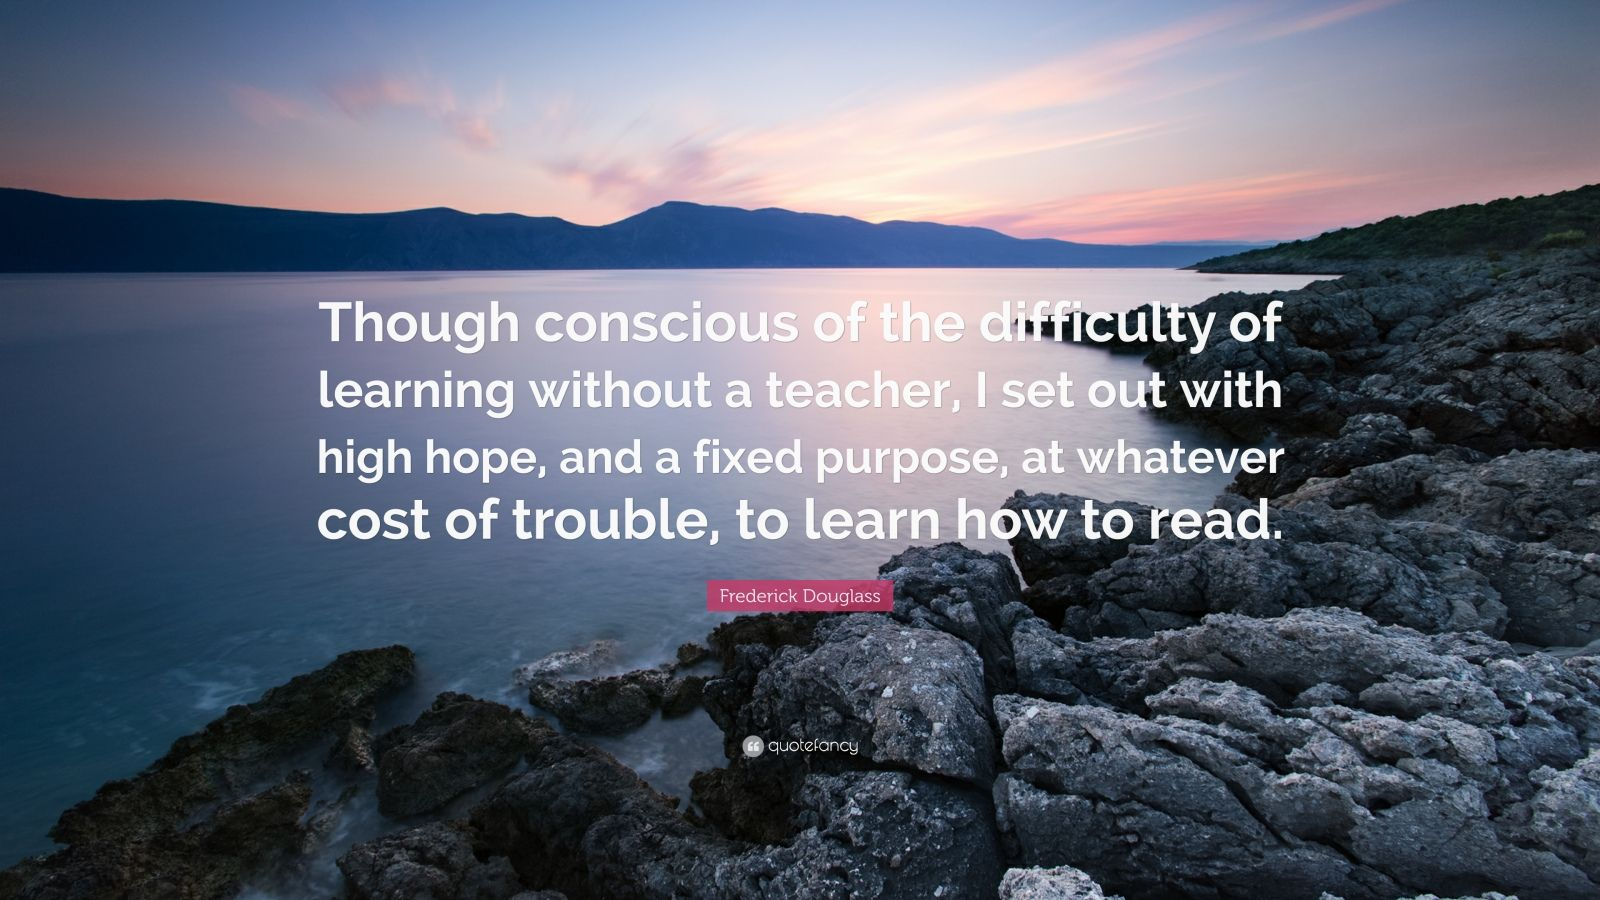 """Frederick Douglass Quote: """"Though conscious of the difficulty of learning without a teacher, I set out with high hope, and a fixed purpose, at whatever cost of trouble, to learn how to read."""""""